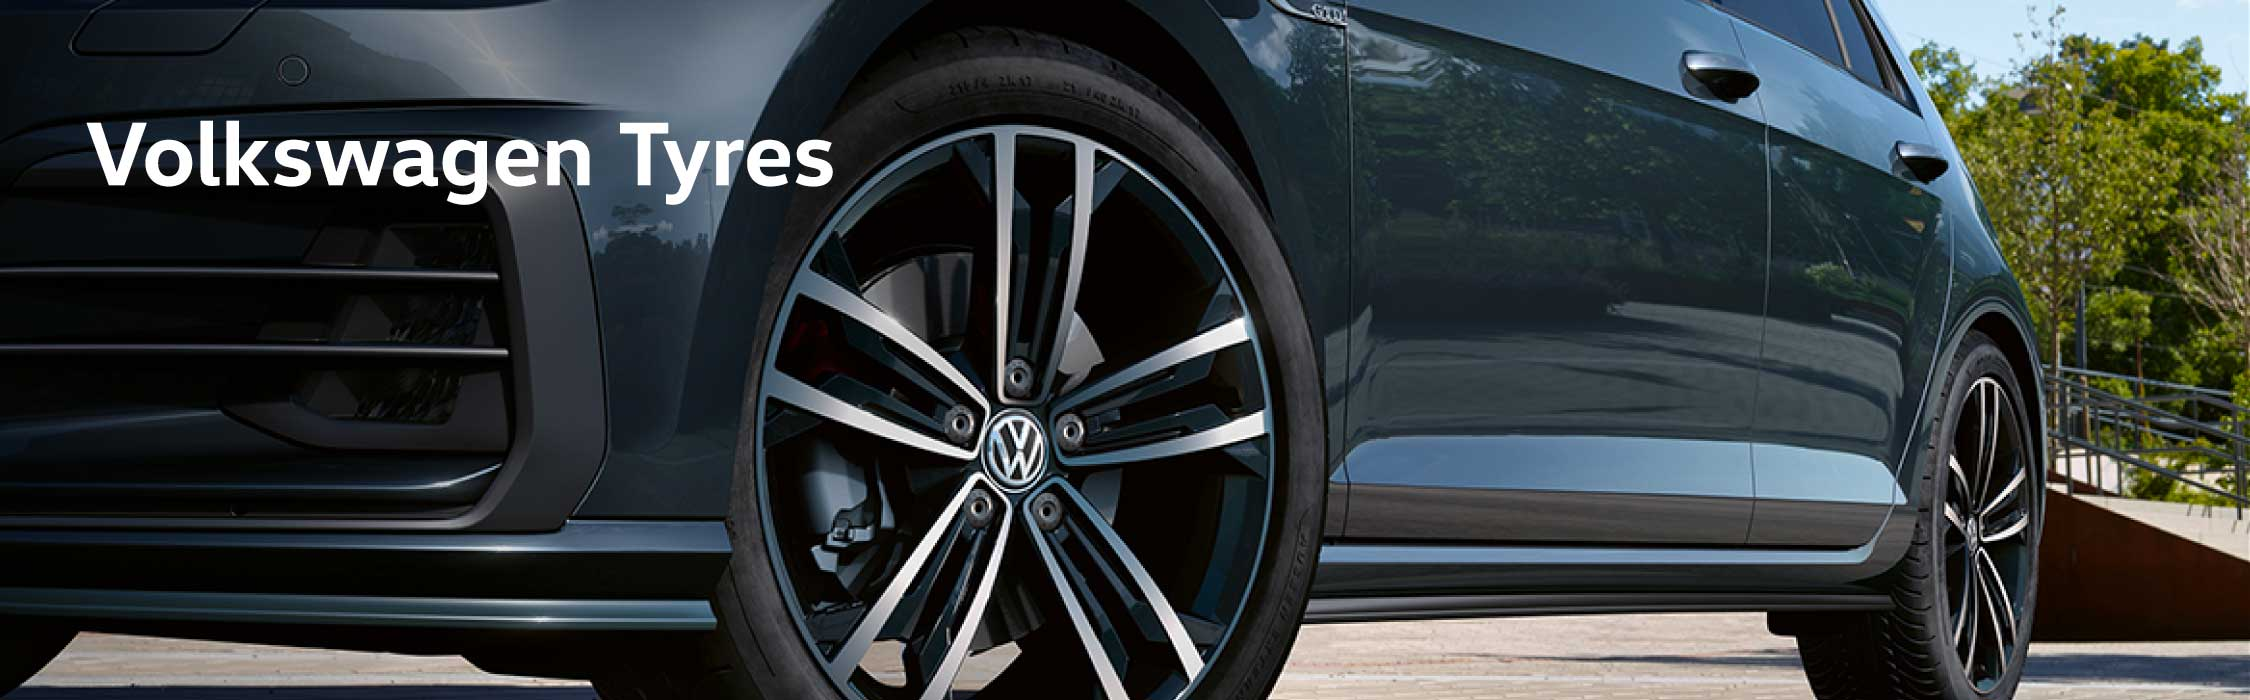 vw eos tire size